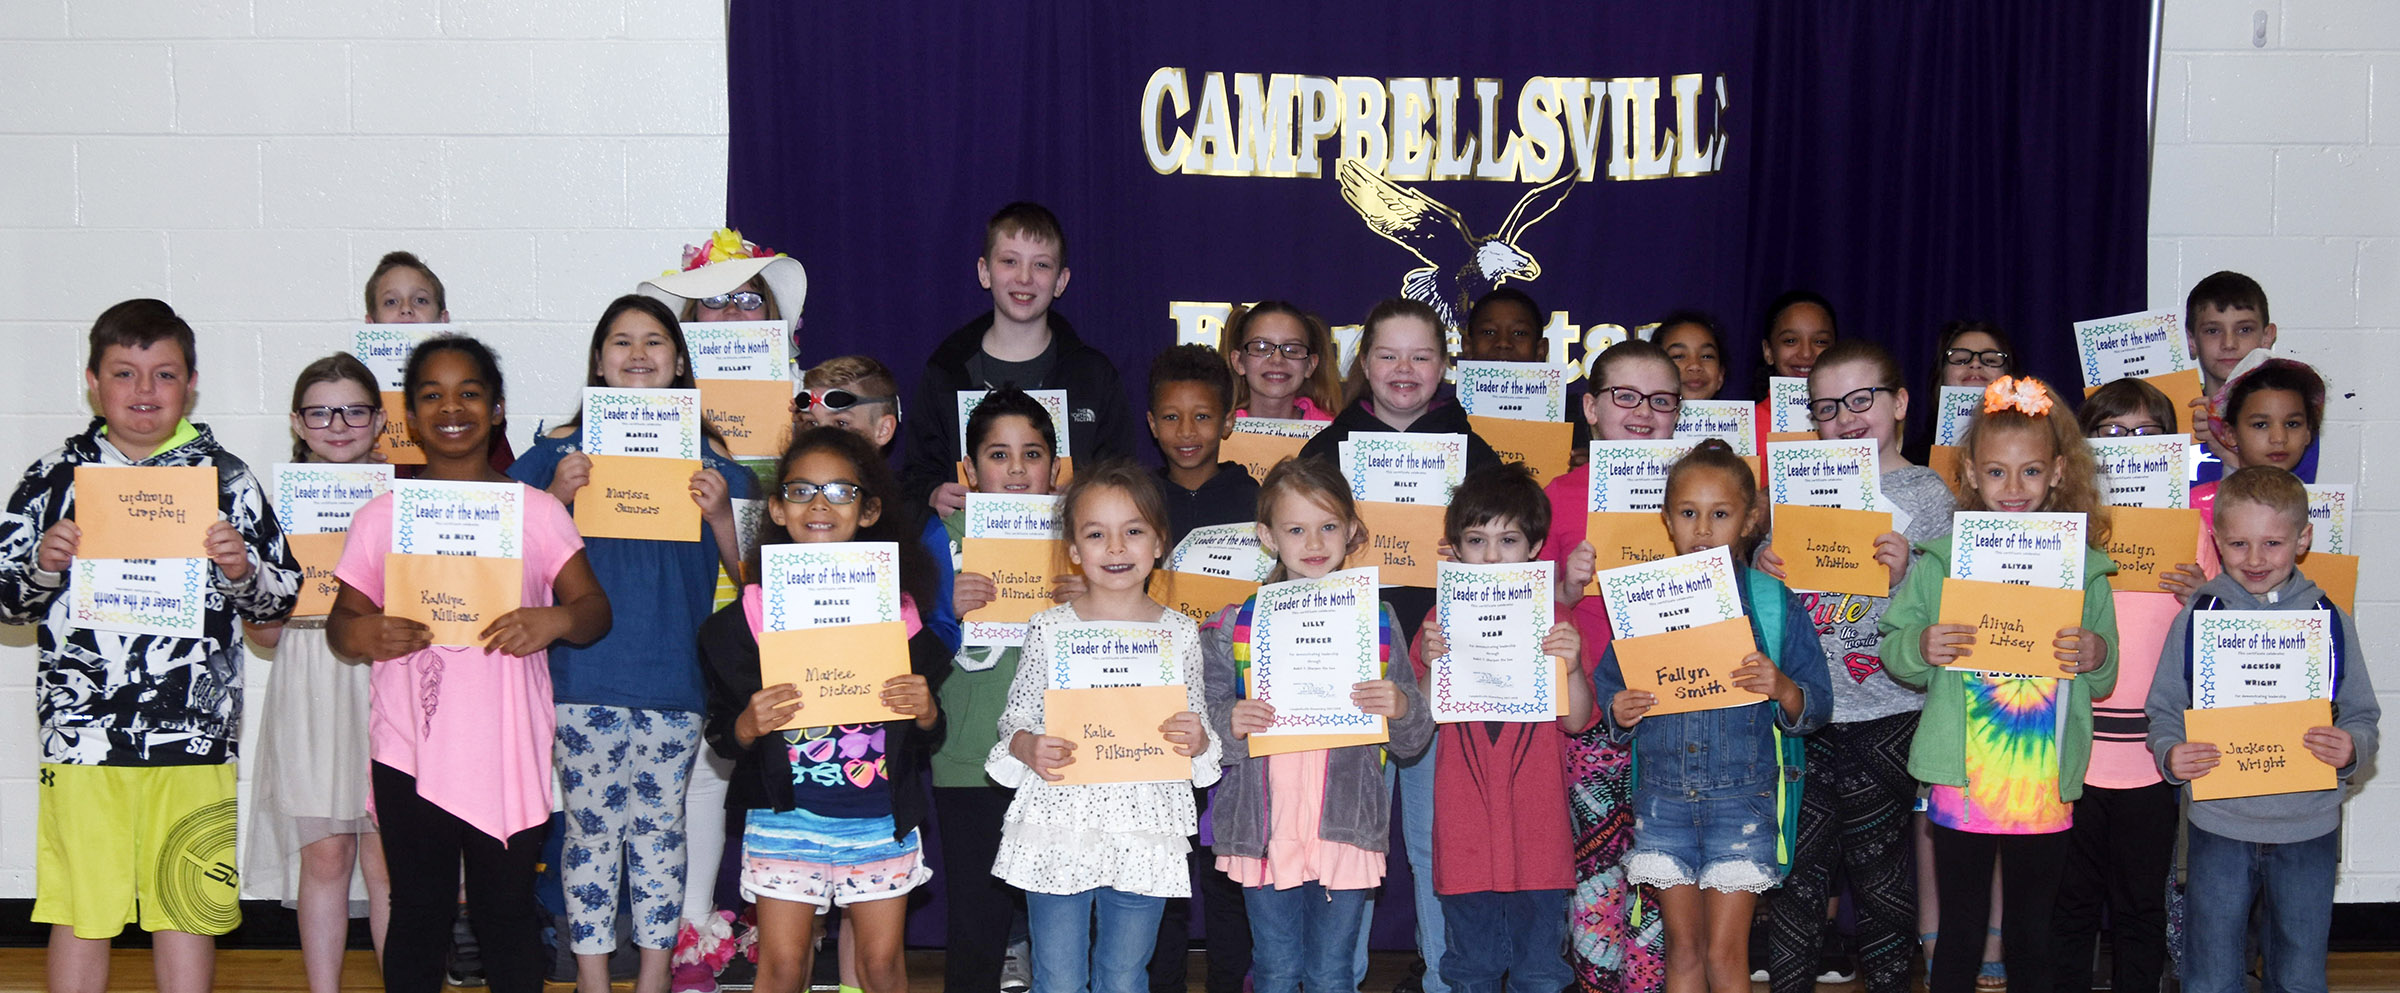 From left, front, are fourth-grader KaMiya Williams, first-grader Marlee Dickens, kindergarteners Kalie Pilkington, Lilly Spencer, Josiah Dean and Fallyn Smith and first-graders Aliyah Litsey and Jackson Wright. Second row, third-grader Hayden Maupin, fifth-grader Morgan Spears, third-grader Marissa Sumners, second-graders Dax Gray and Nicholas Almeida, third-grader Rajon Taylor, fifth-grader Miley Hash, second-graders Frehley Whitlow, London Whitlow and Addelyn Dooley and first-grader Aleeya Spaulding. Back, fifth-graders Will Wooley, Mellany Parker and Kaleb Miller, fourth-grader Vivian York, third-grader Jaron Johnson, fourth-graders De'Asia Fisher, Alyssa Knezevic and Raeanna Jefferson and third-grader Aidan Wilson.